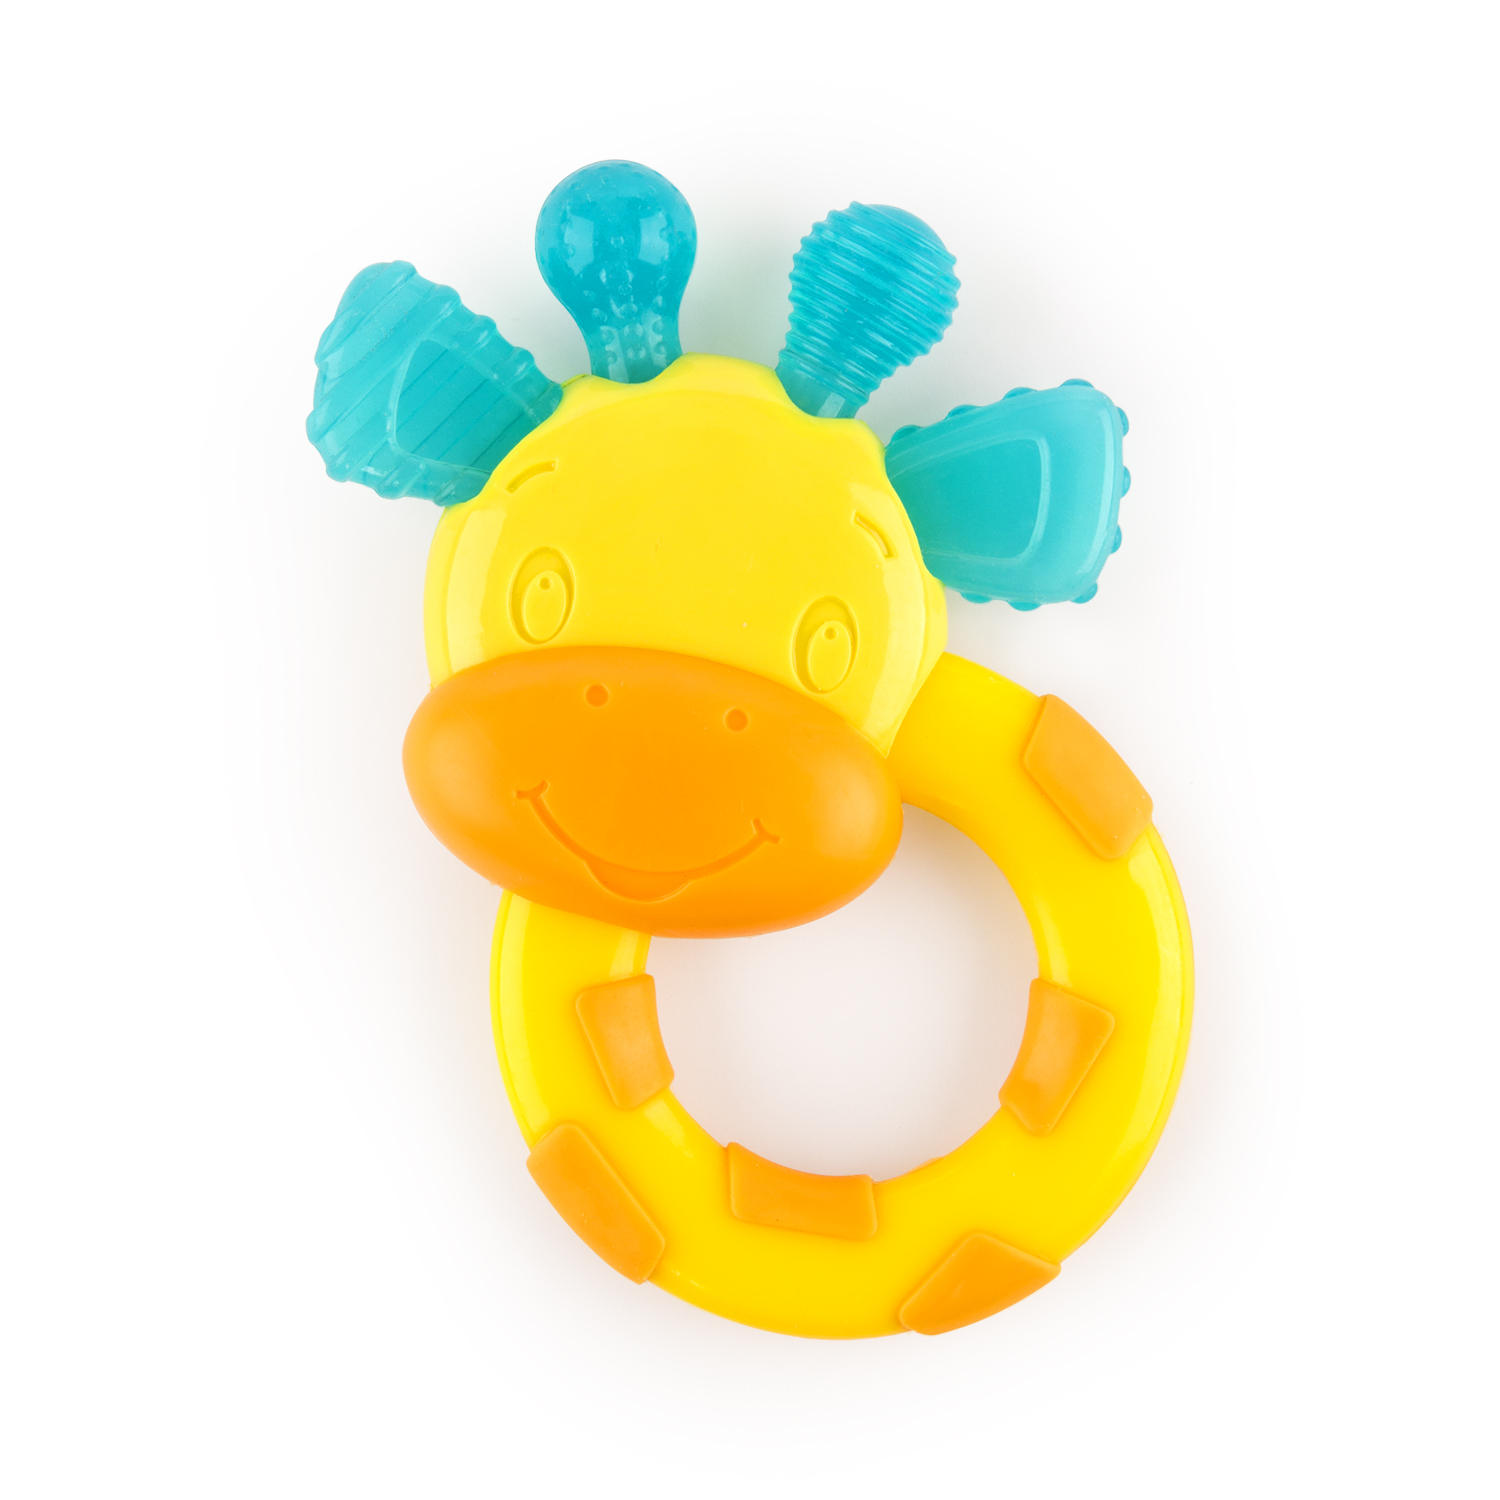 Bright Starts First Bites Easy-Grasp Stage 3 Teether Toy